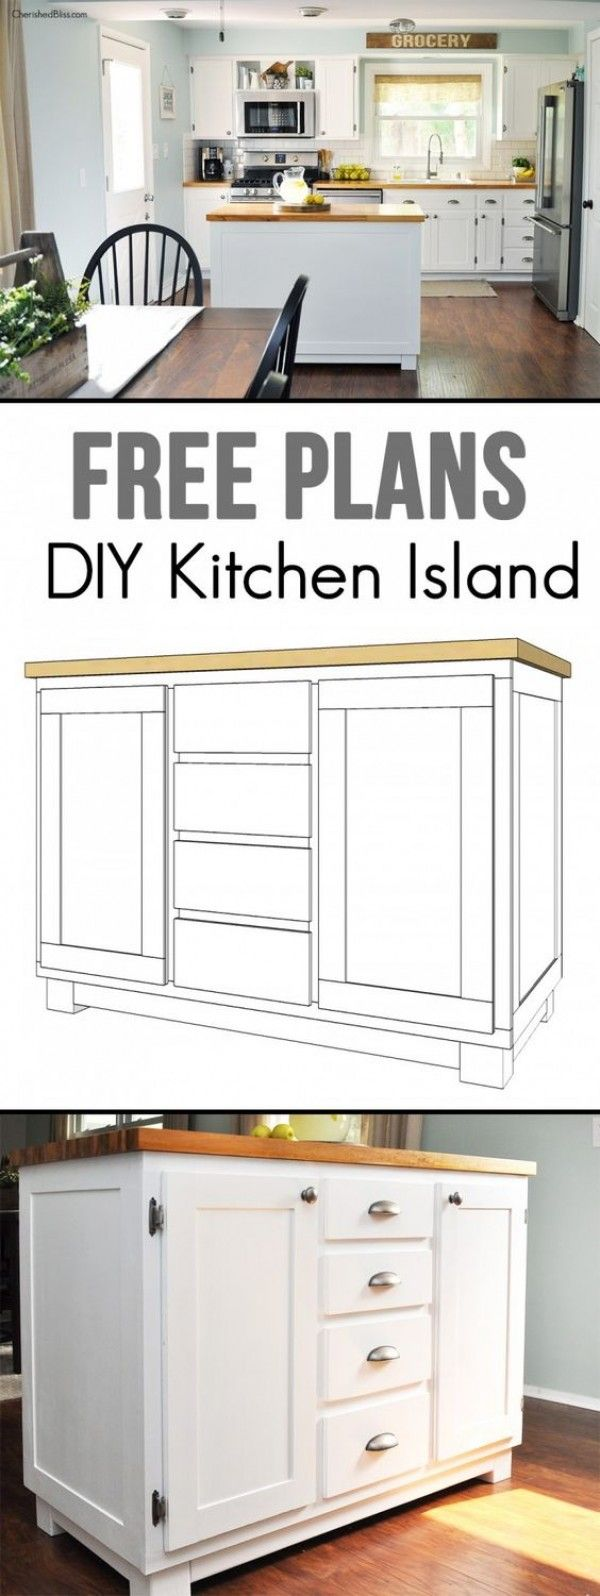 Best 25+ Diy kitchen island ideas on Pinterest | Build kitchen ...